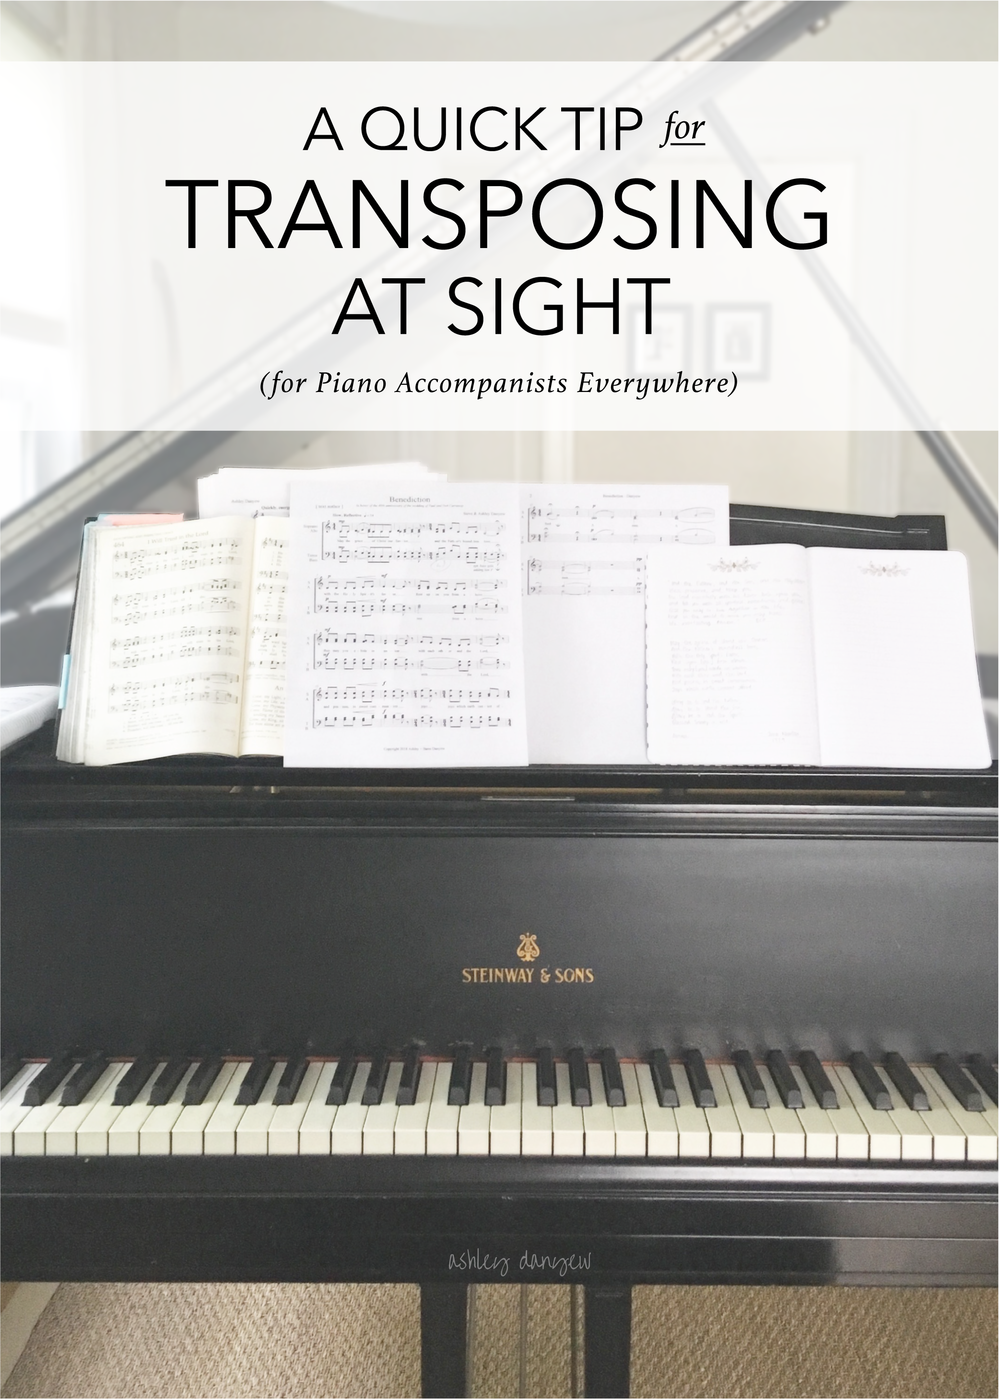 A Quick Tip for Transposing at Sight (for Piano Accompanists Everywhere)